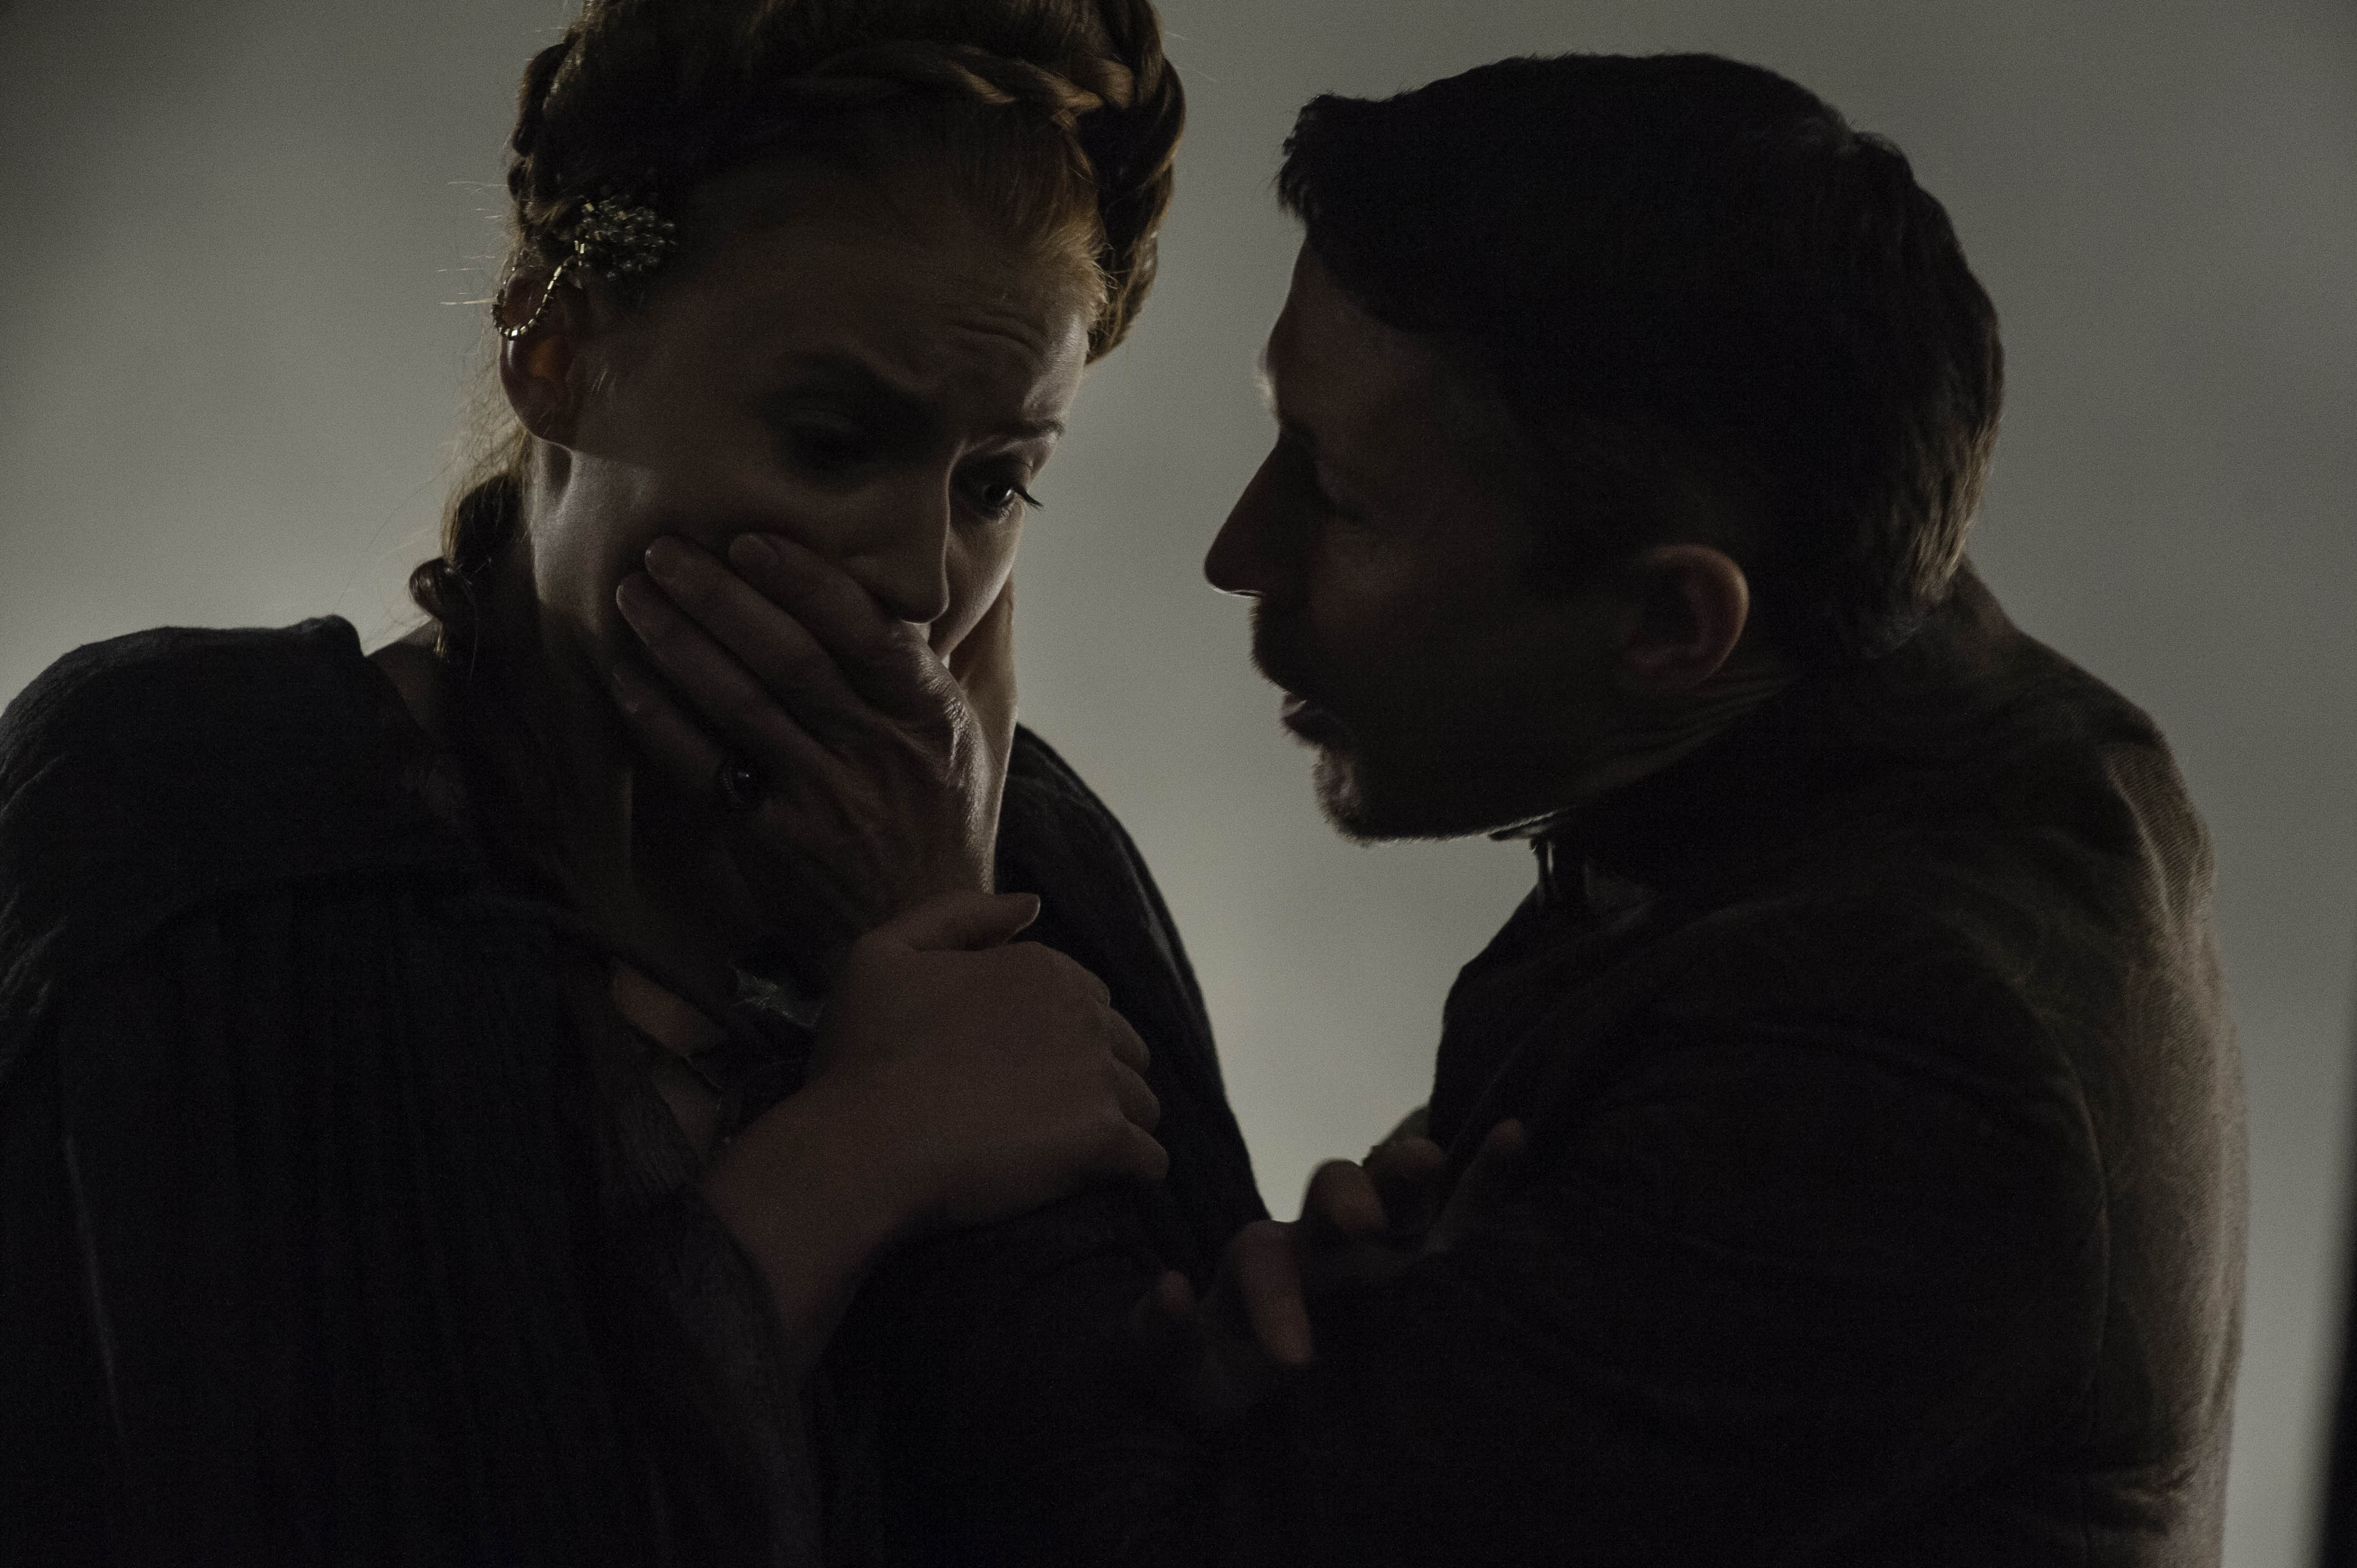 petyr and sansa relationship test